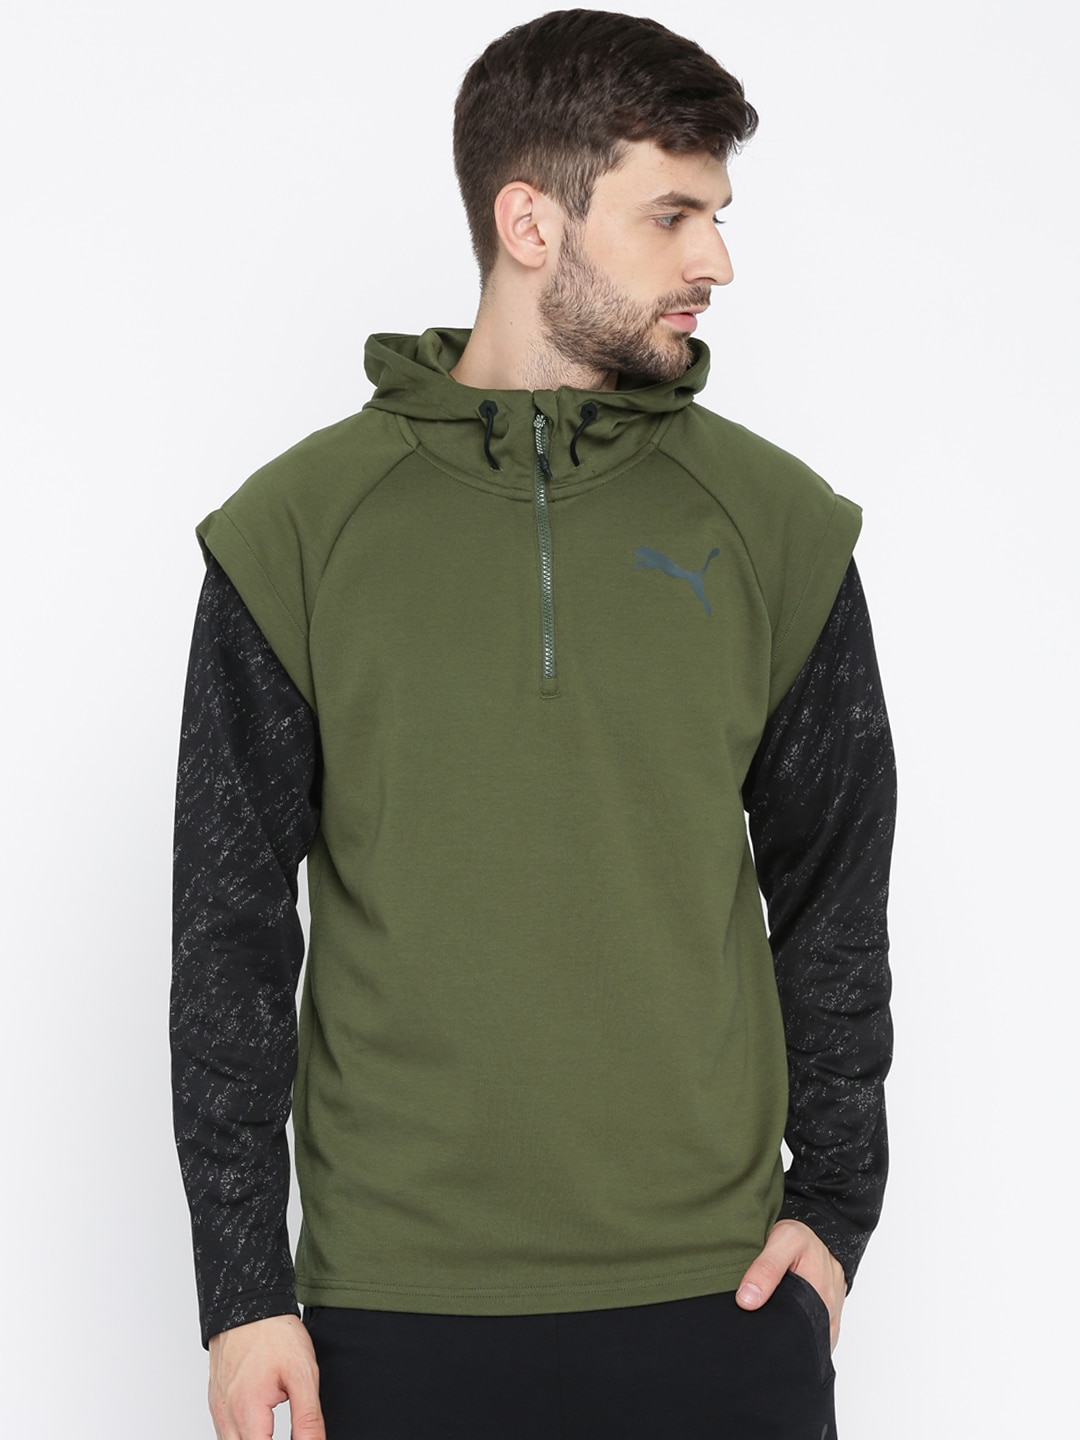 Buy Puma Olive Green Solid 1/4 Zip Energy Hooded Men's Sweatshirt At Best Price